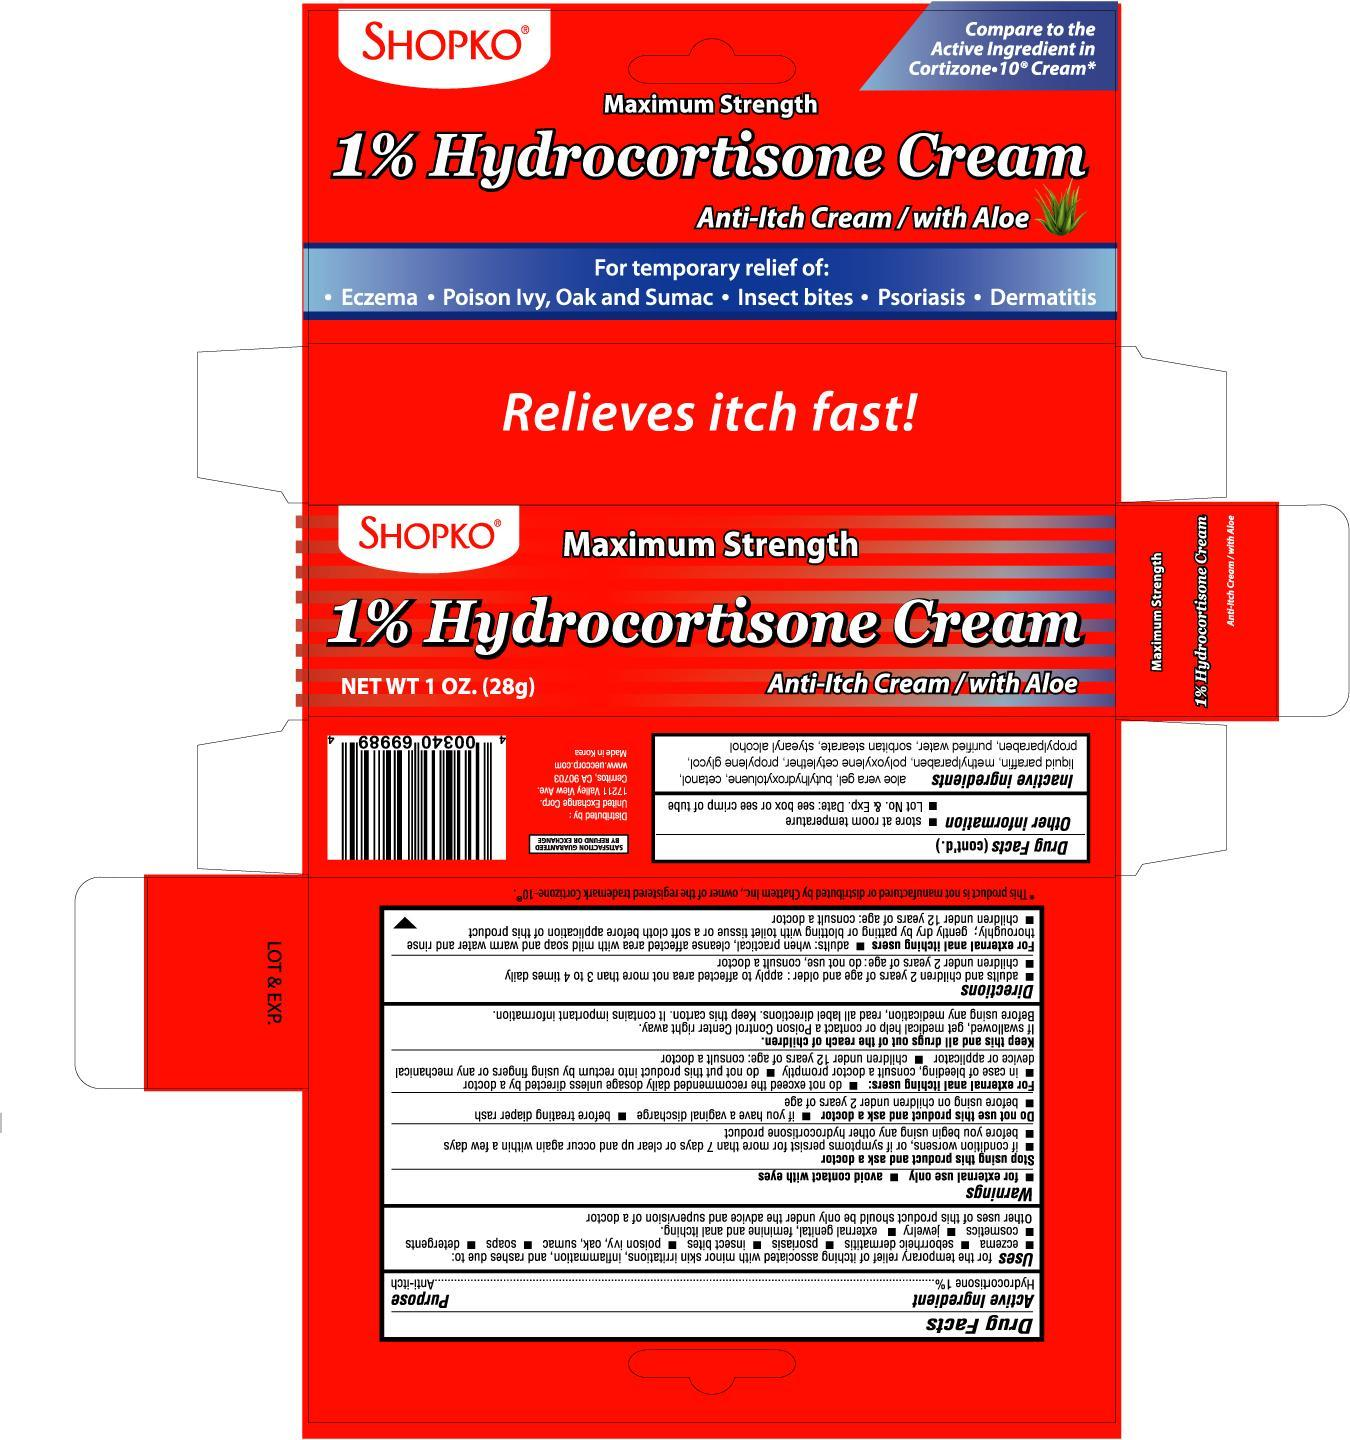 Shopko Hydrocortisone With Aloe (Hydrocortisone) Cream [United Exchange Corp]